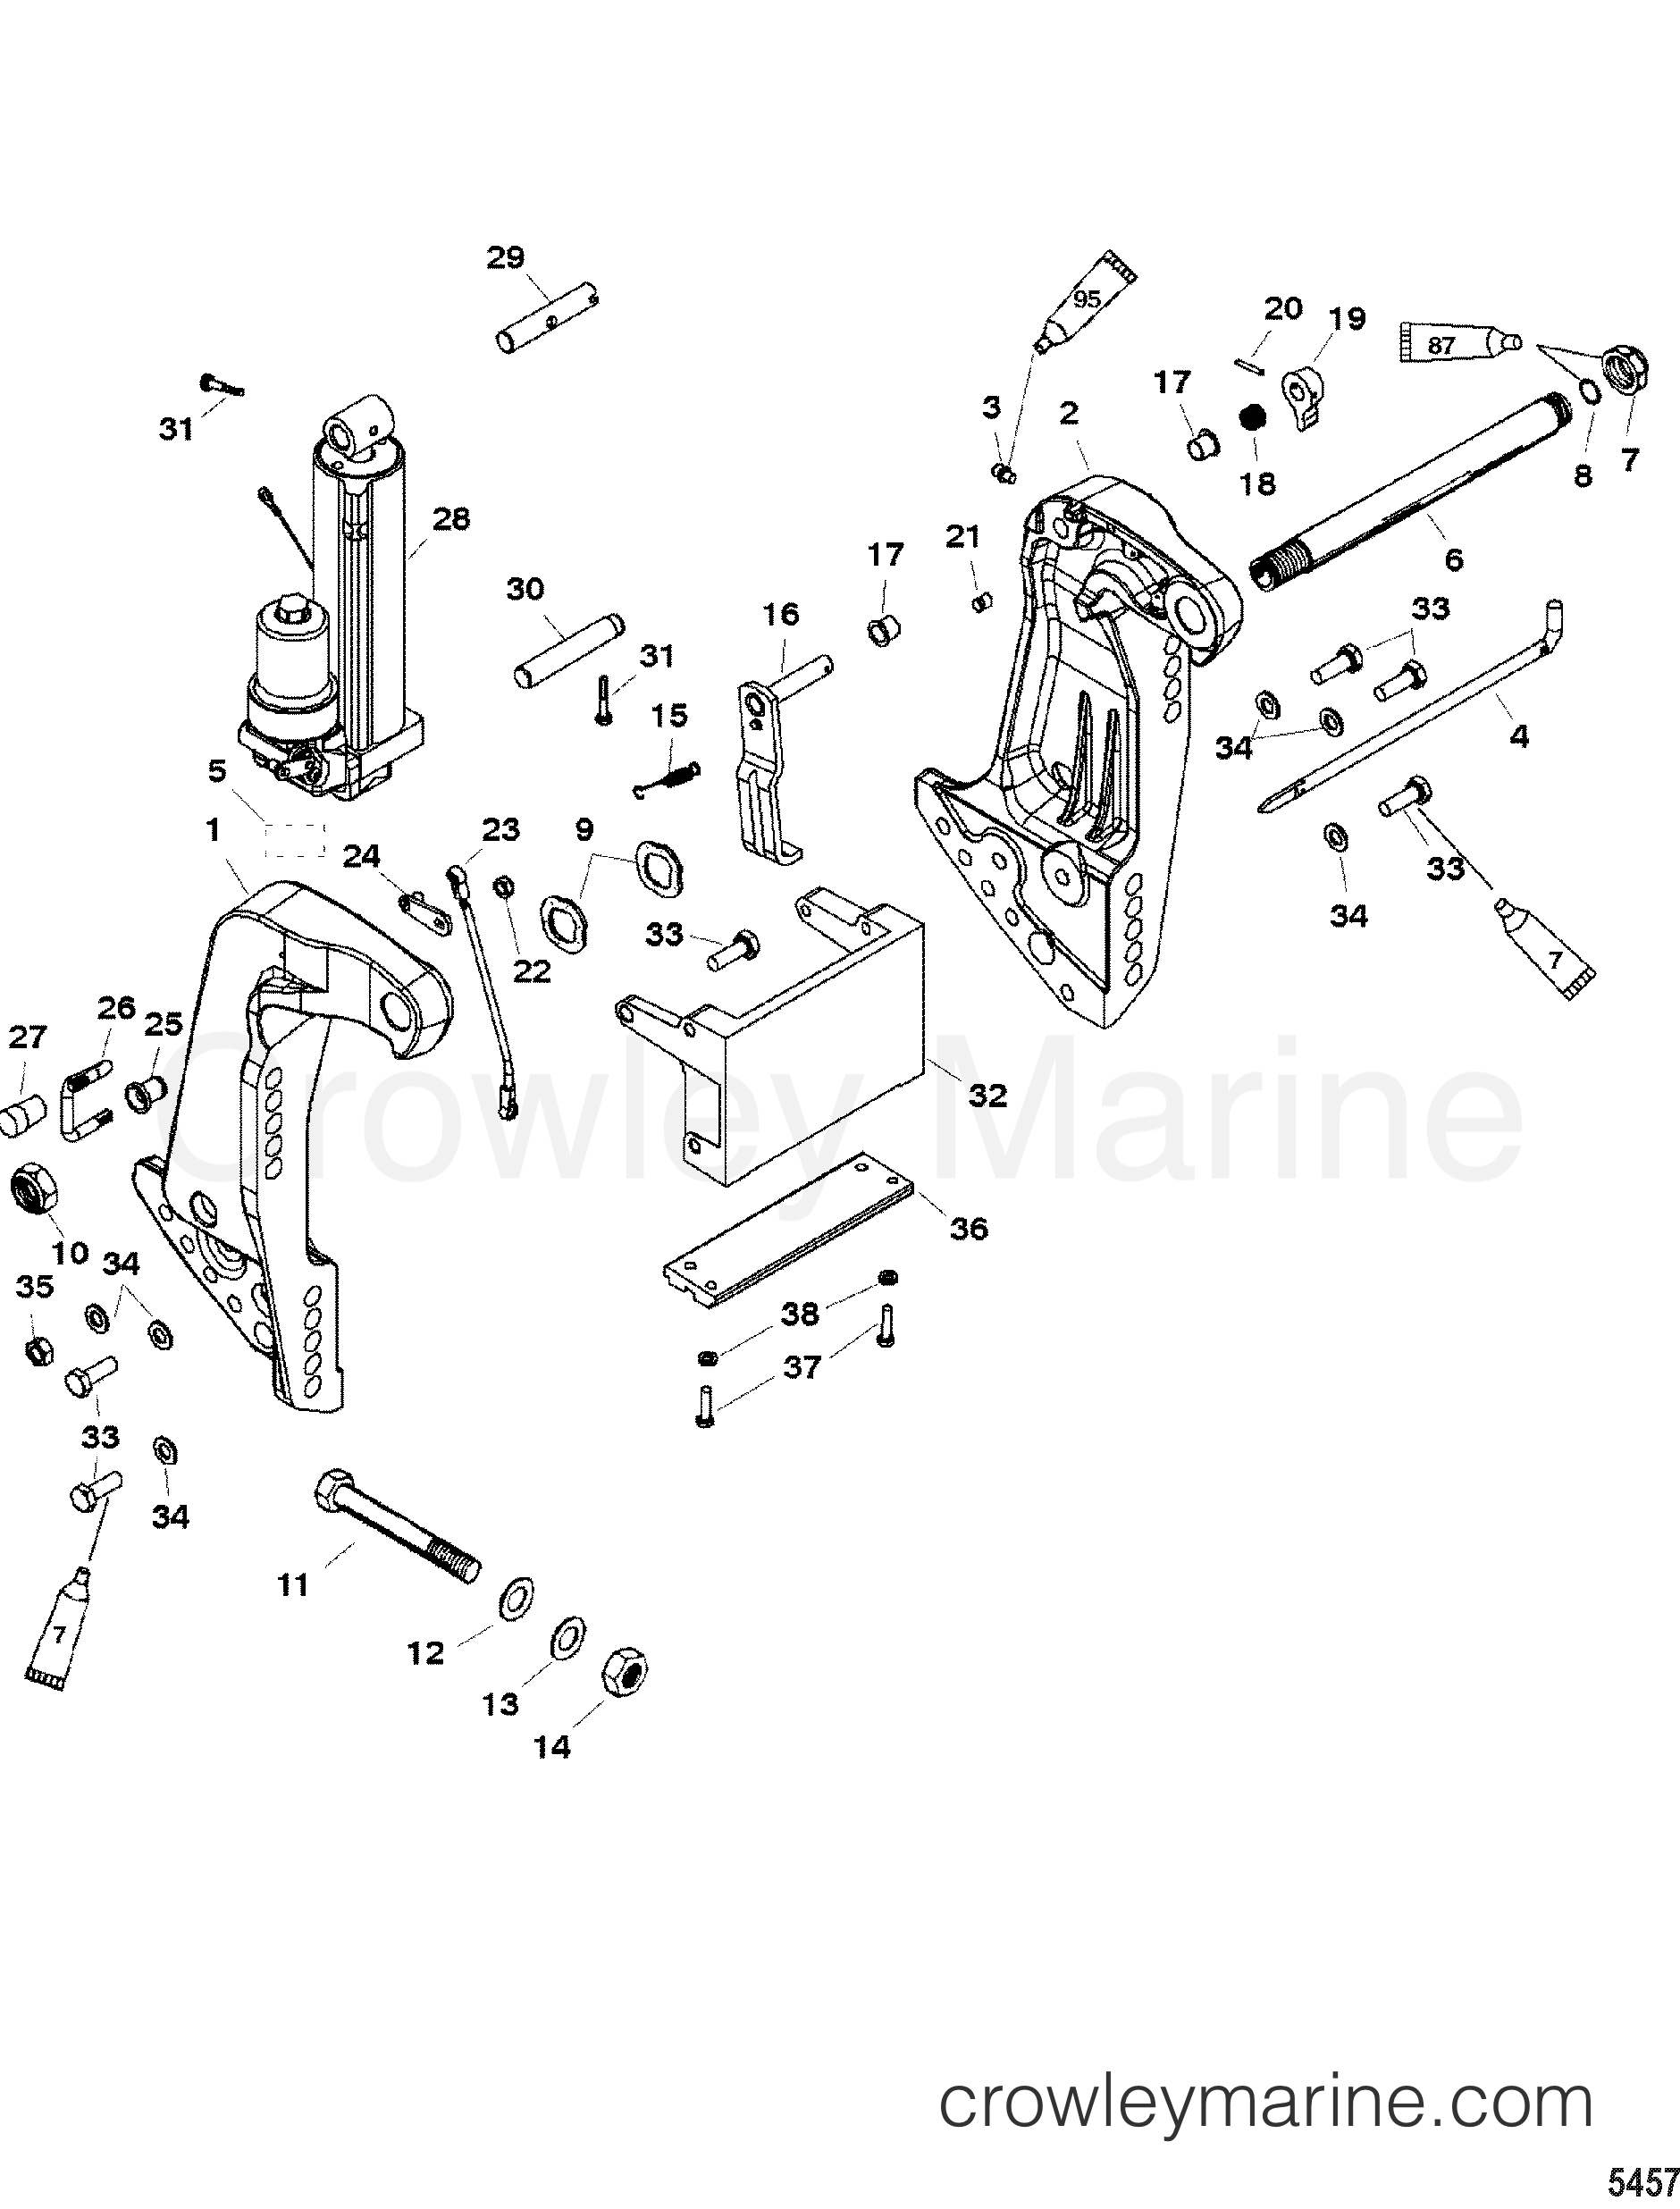 2004 Mercury Outboard 75 [MLH] - 1075217CD TRANSOM BRACKET(SN- USA 0T800999/ BEL 0P267999 AND BELOW) section